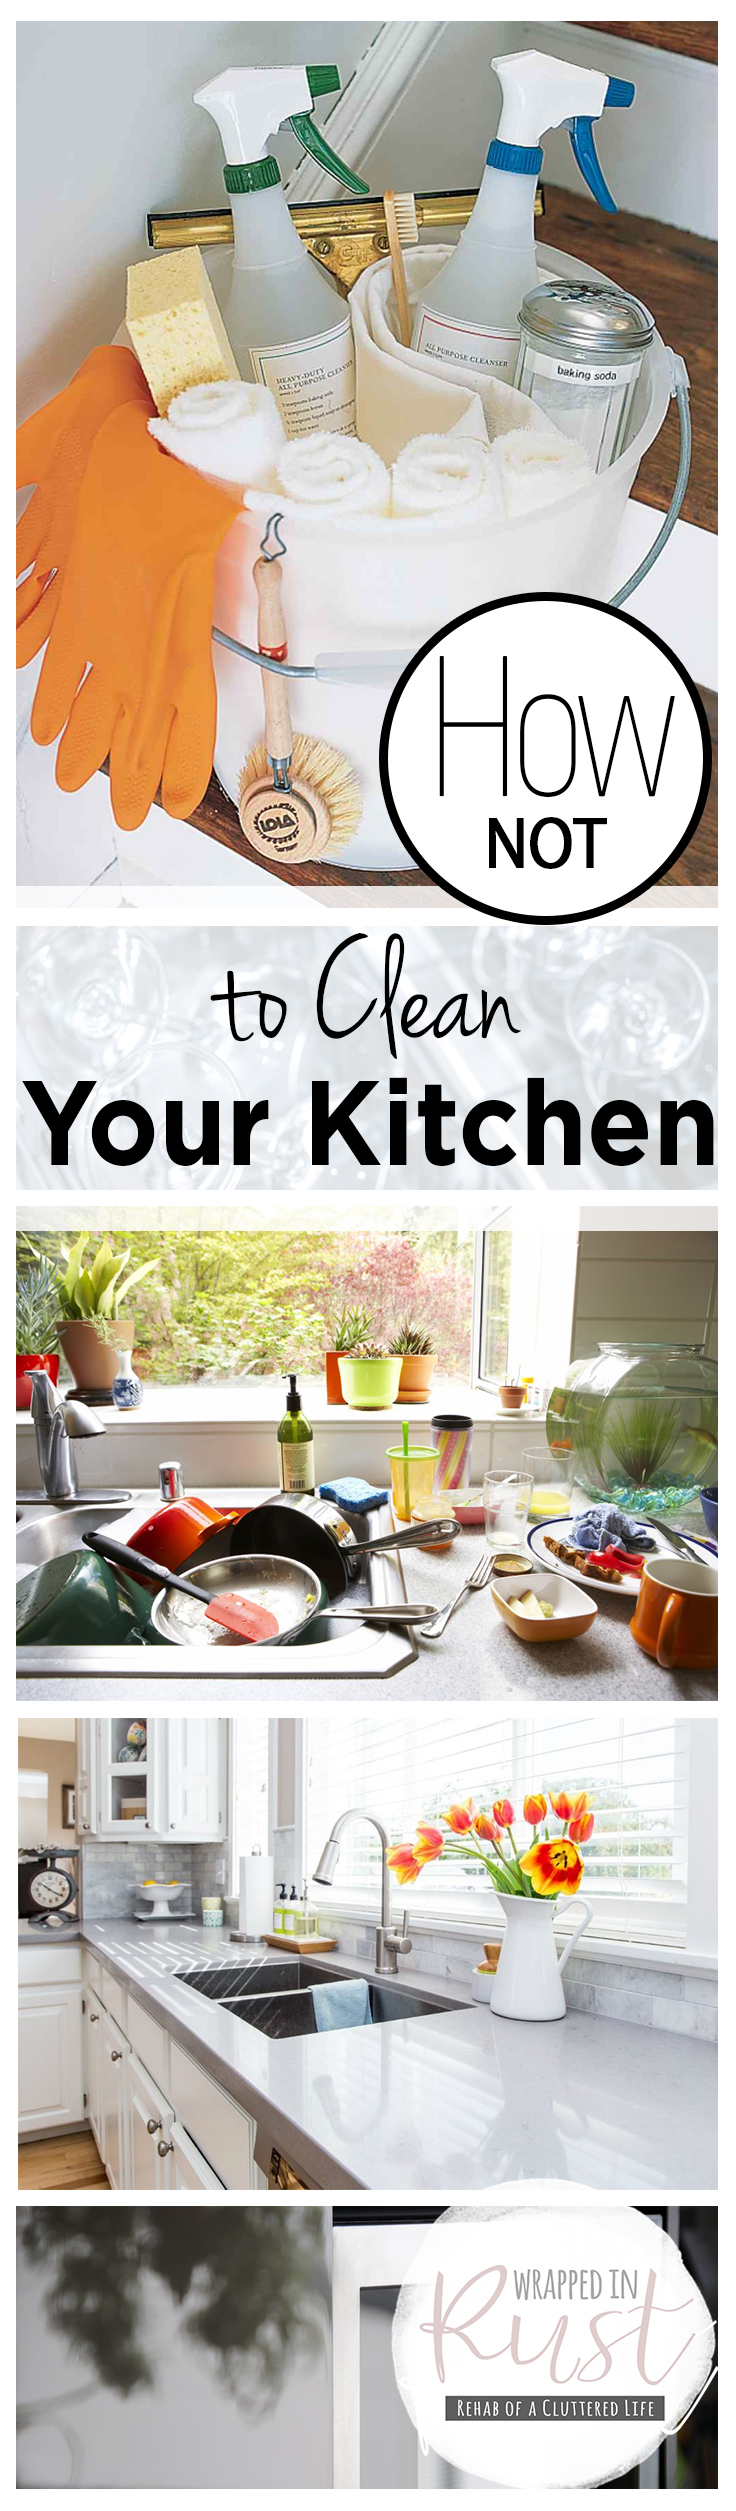 how not to clean your kitchen wrapped in rust